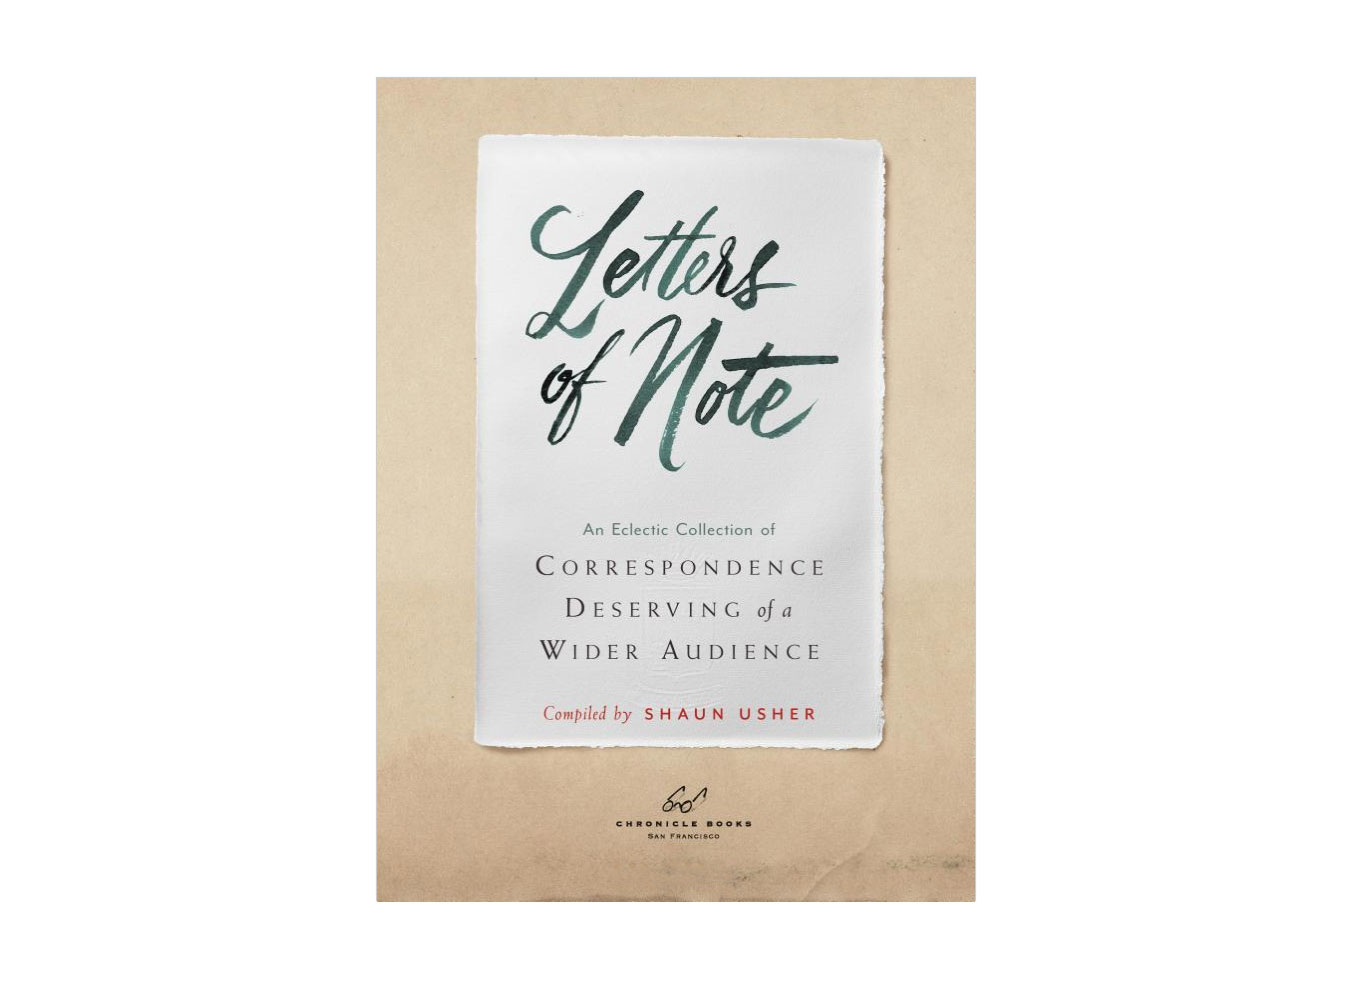 Buy Letters of Note: An Eclectic Collection of Correspondence Deserving of a Wider Audience on Amazon